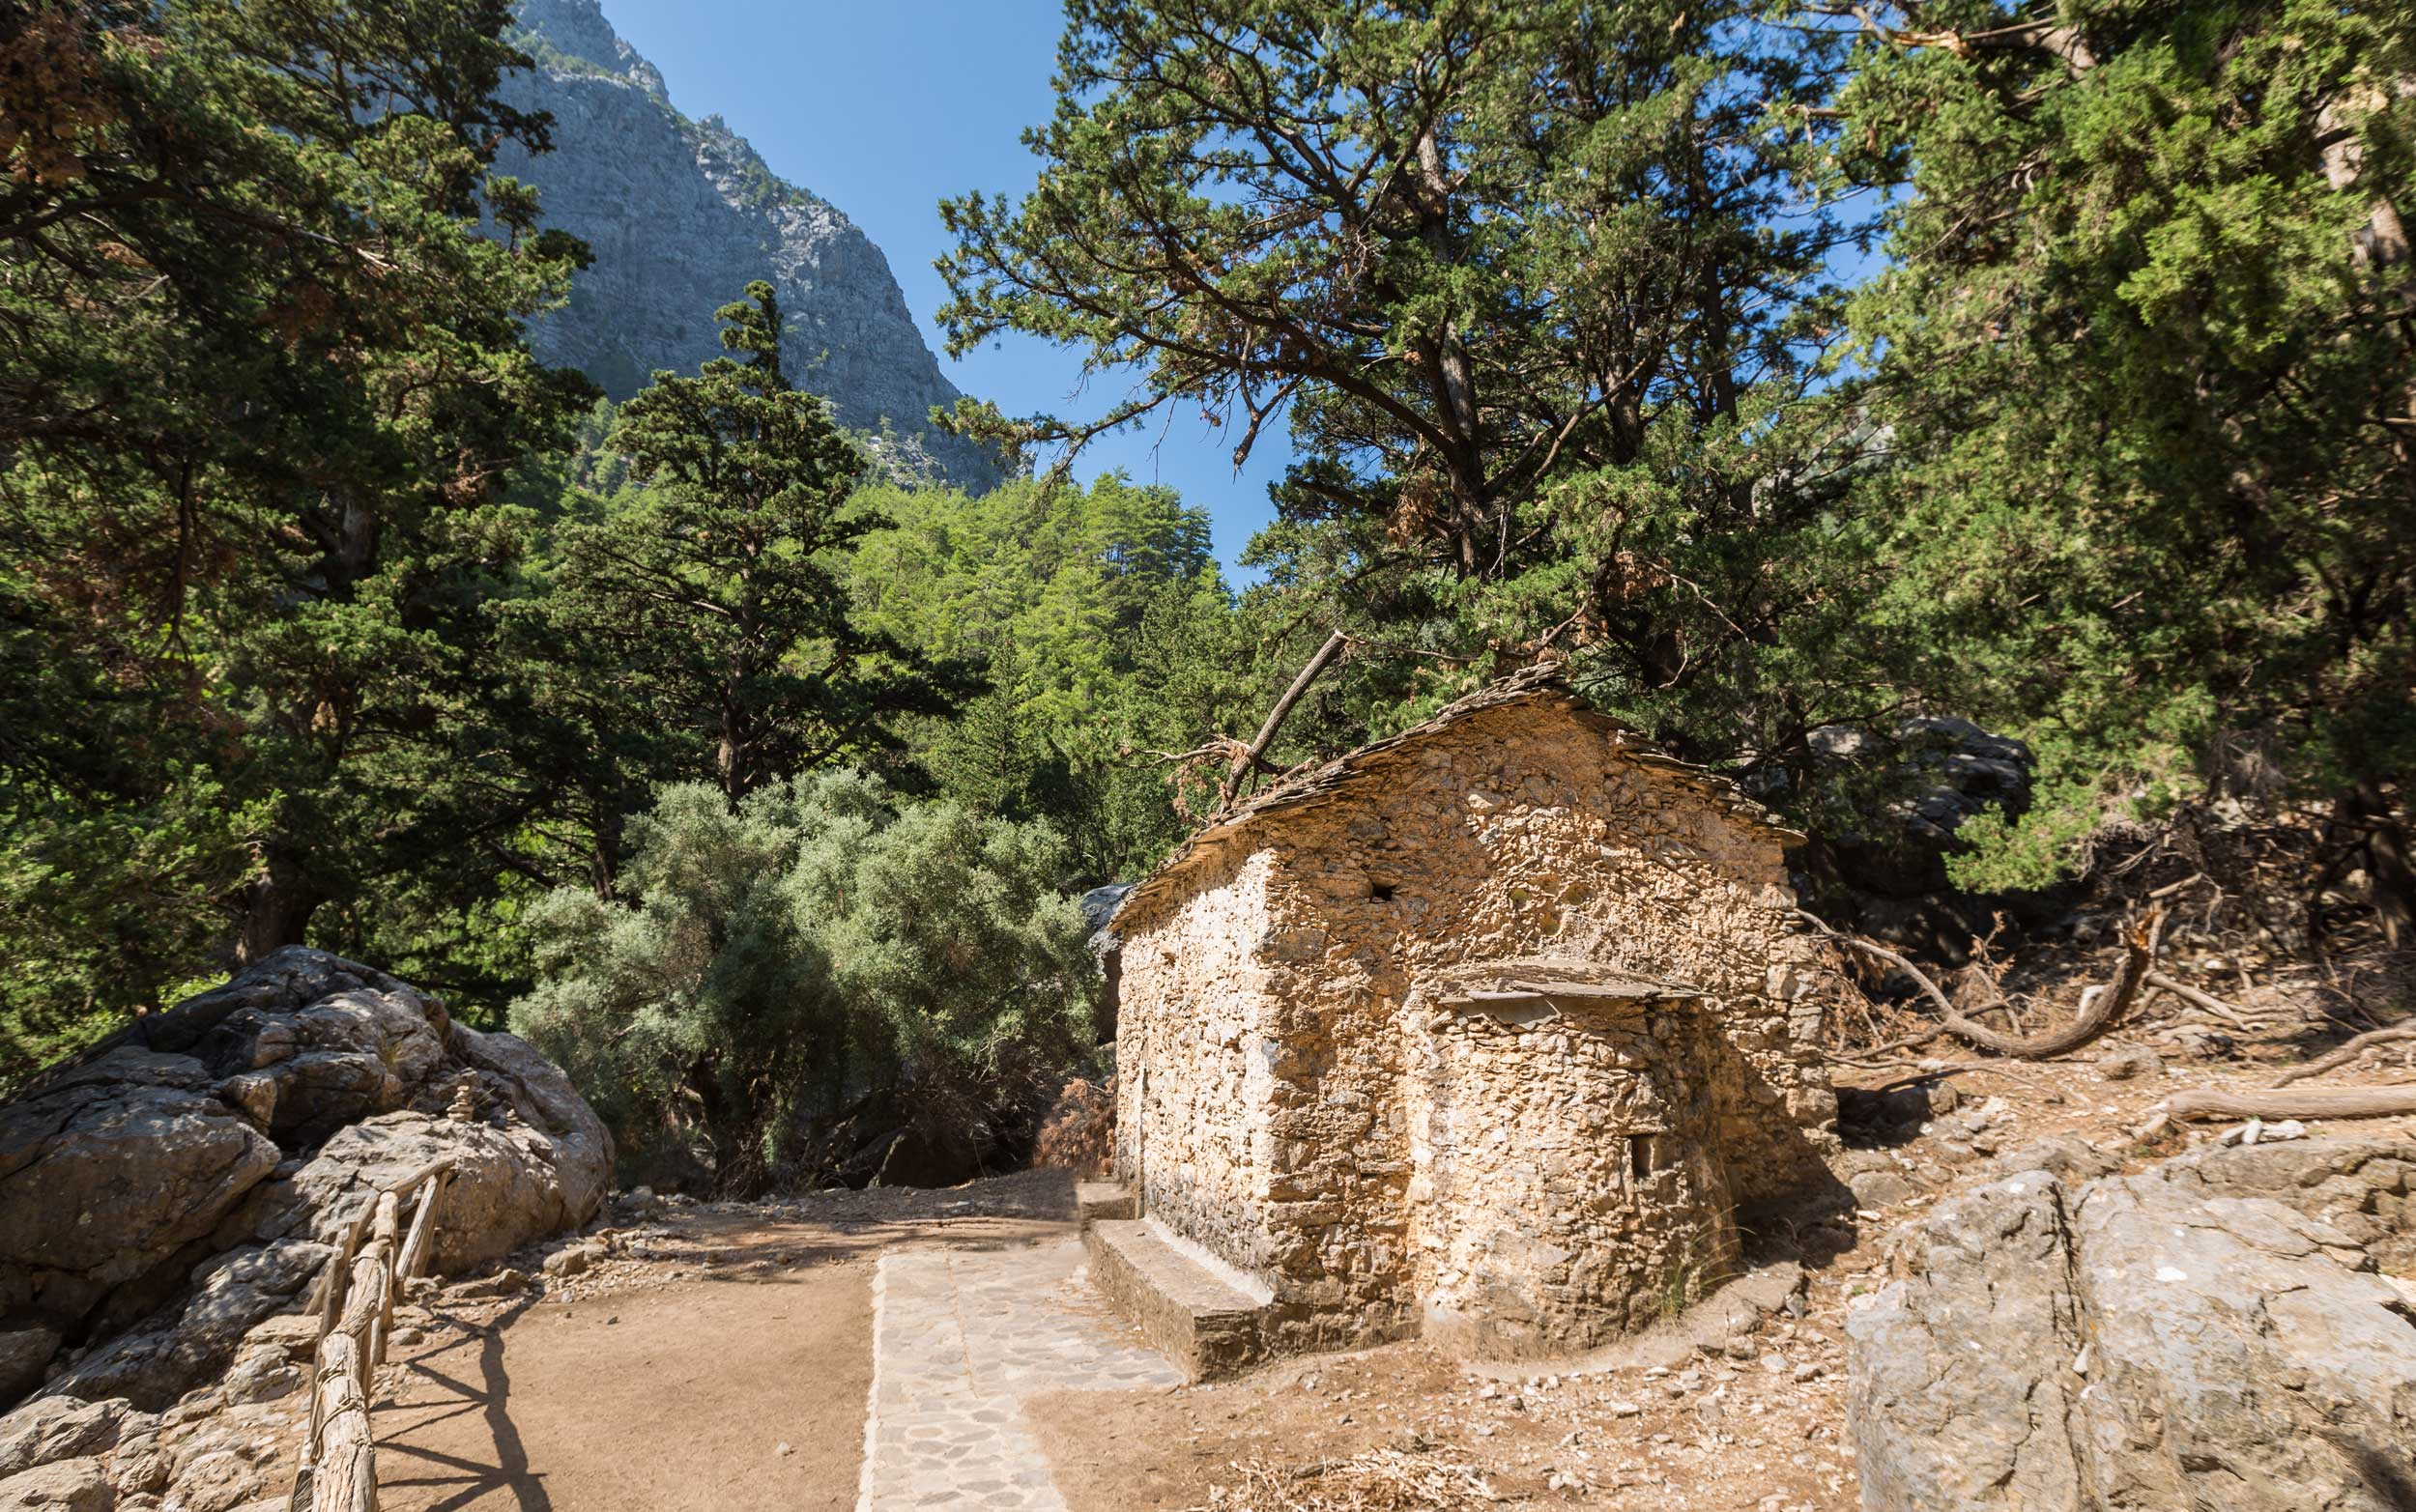 Brown rough stone building in the forest of the Samaria gorge, Crete